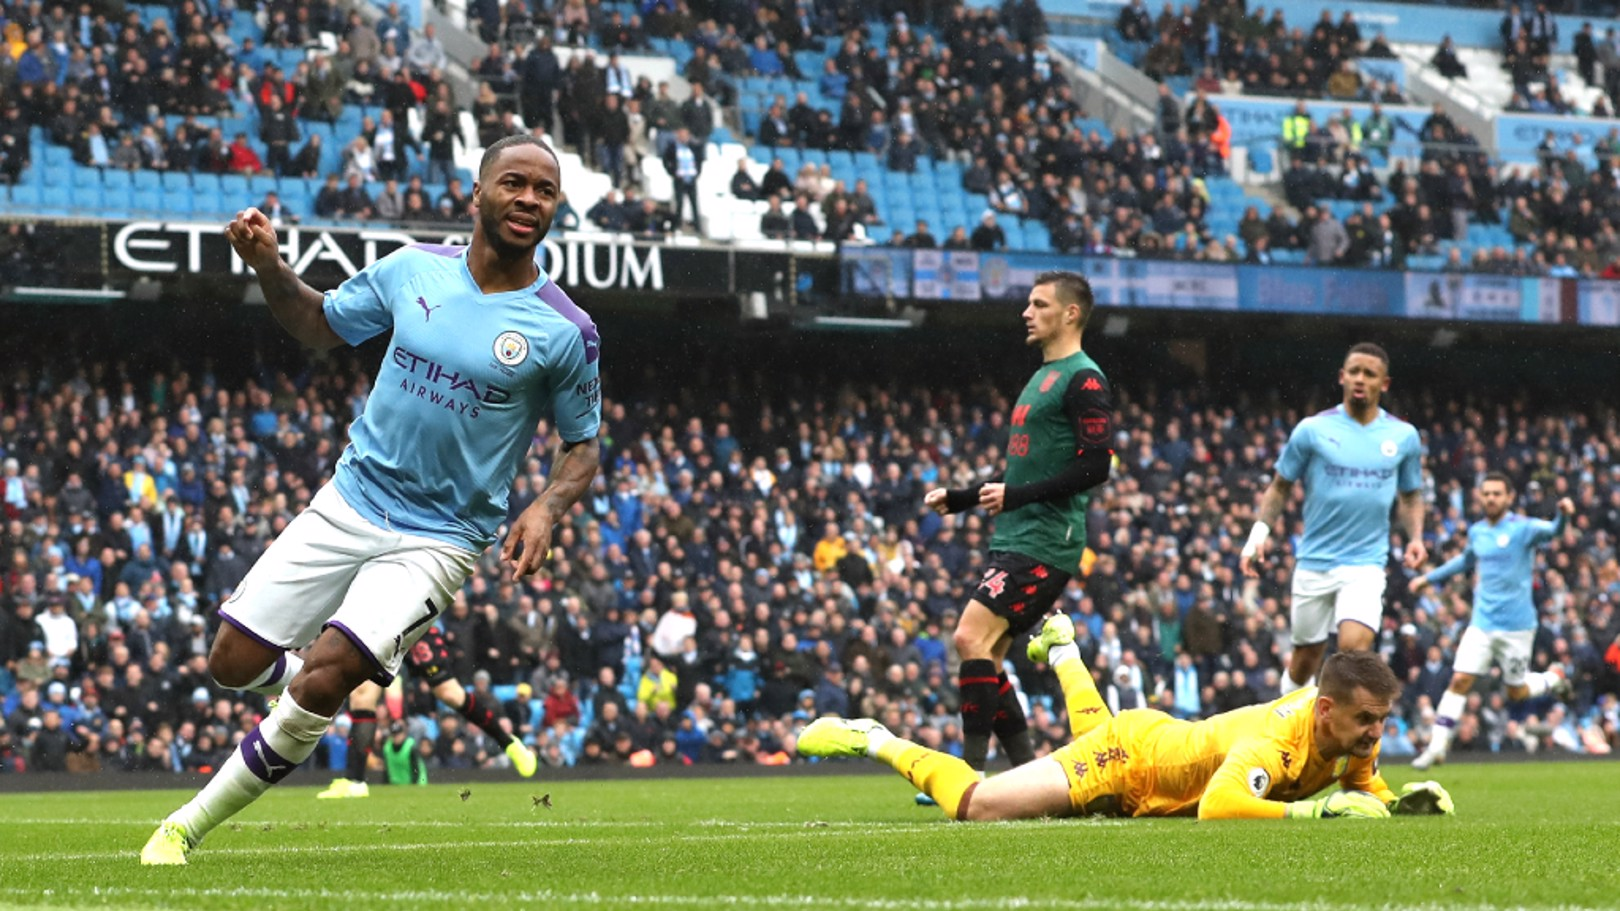 RAMPANT RAHEEM: Raheem Sterling wheels away in celebration,  after breaking the deadlock